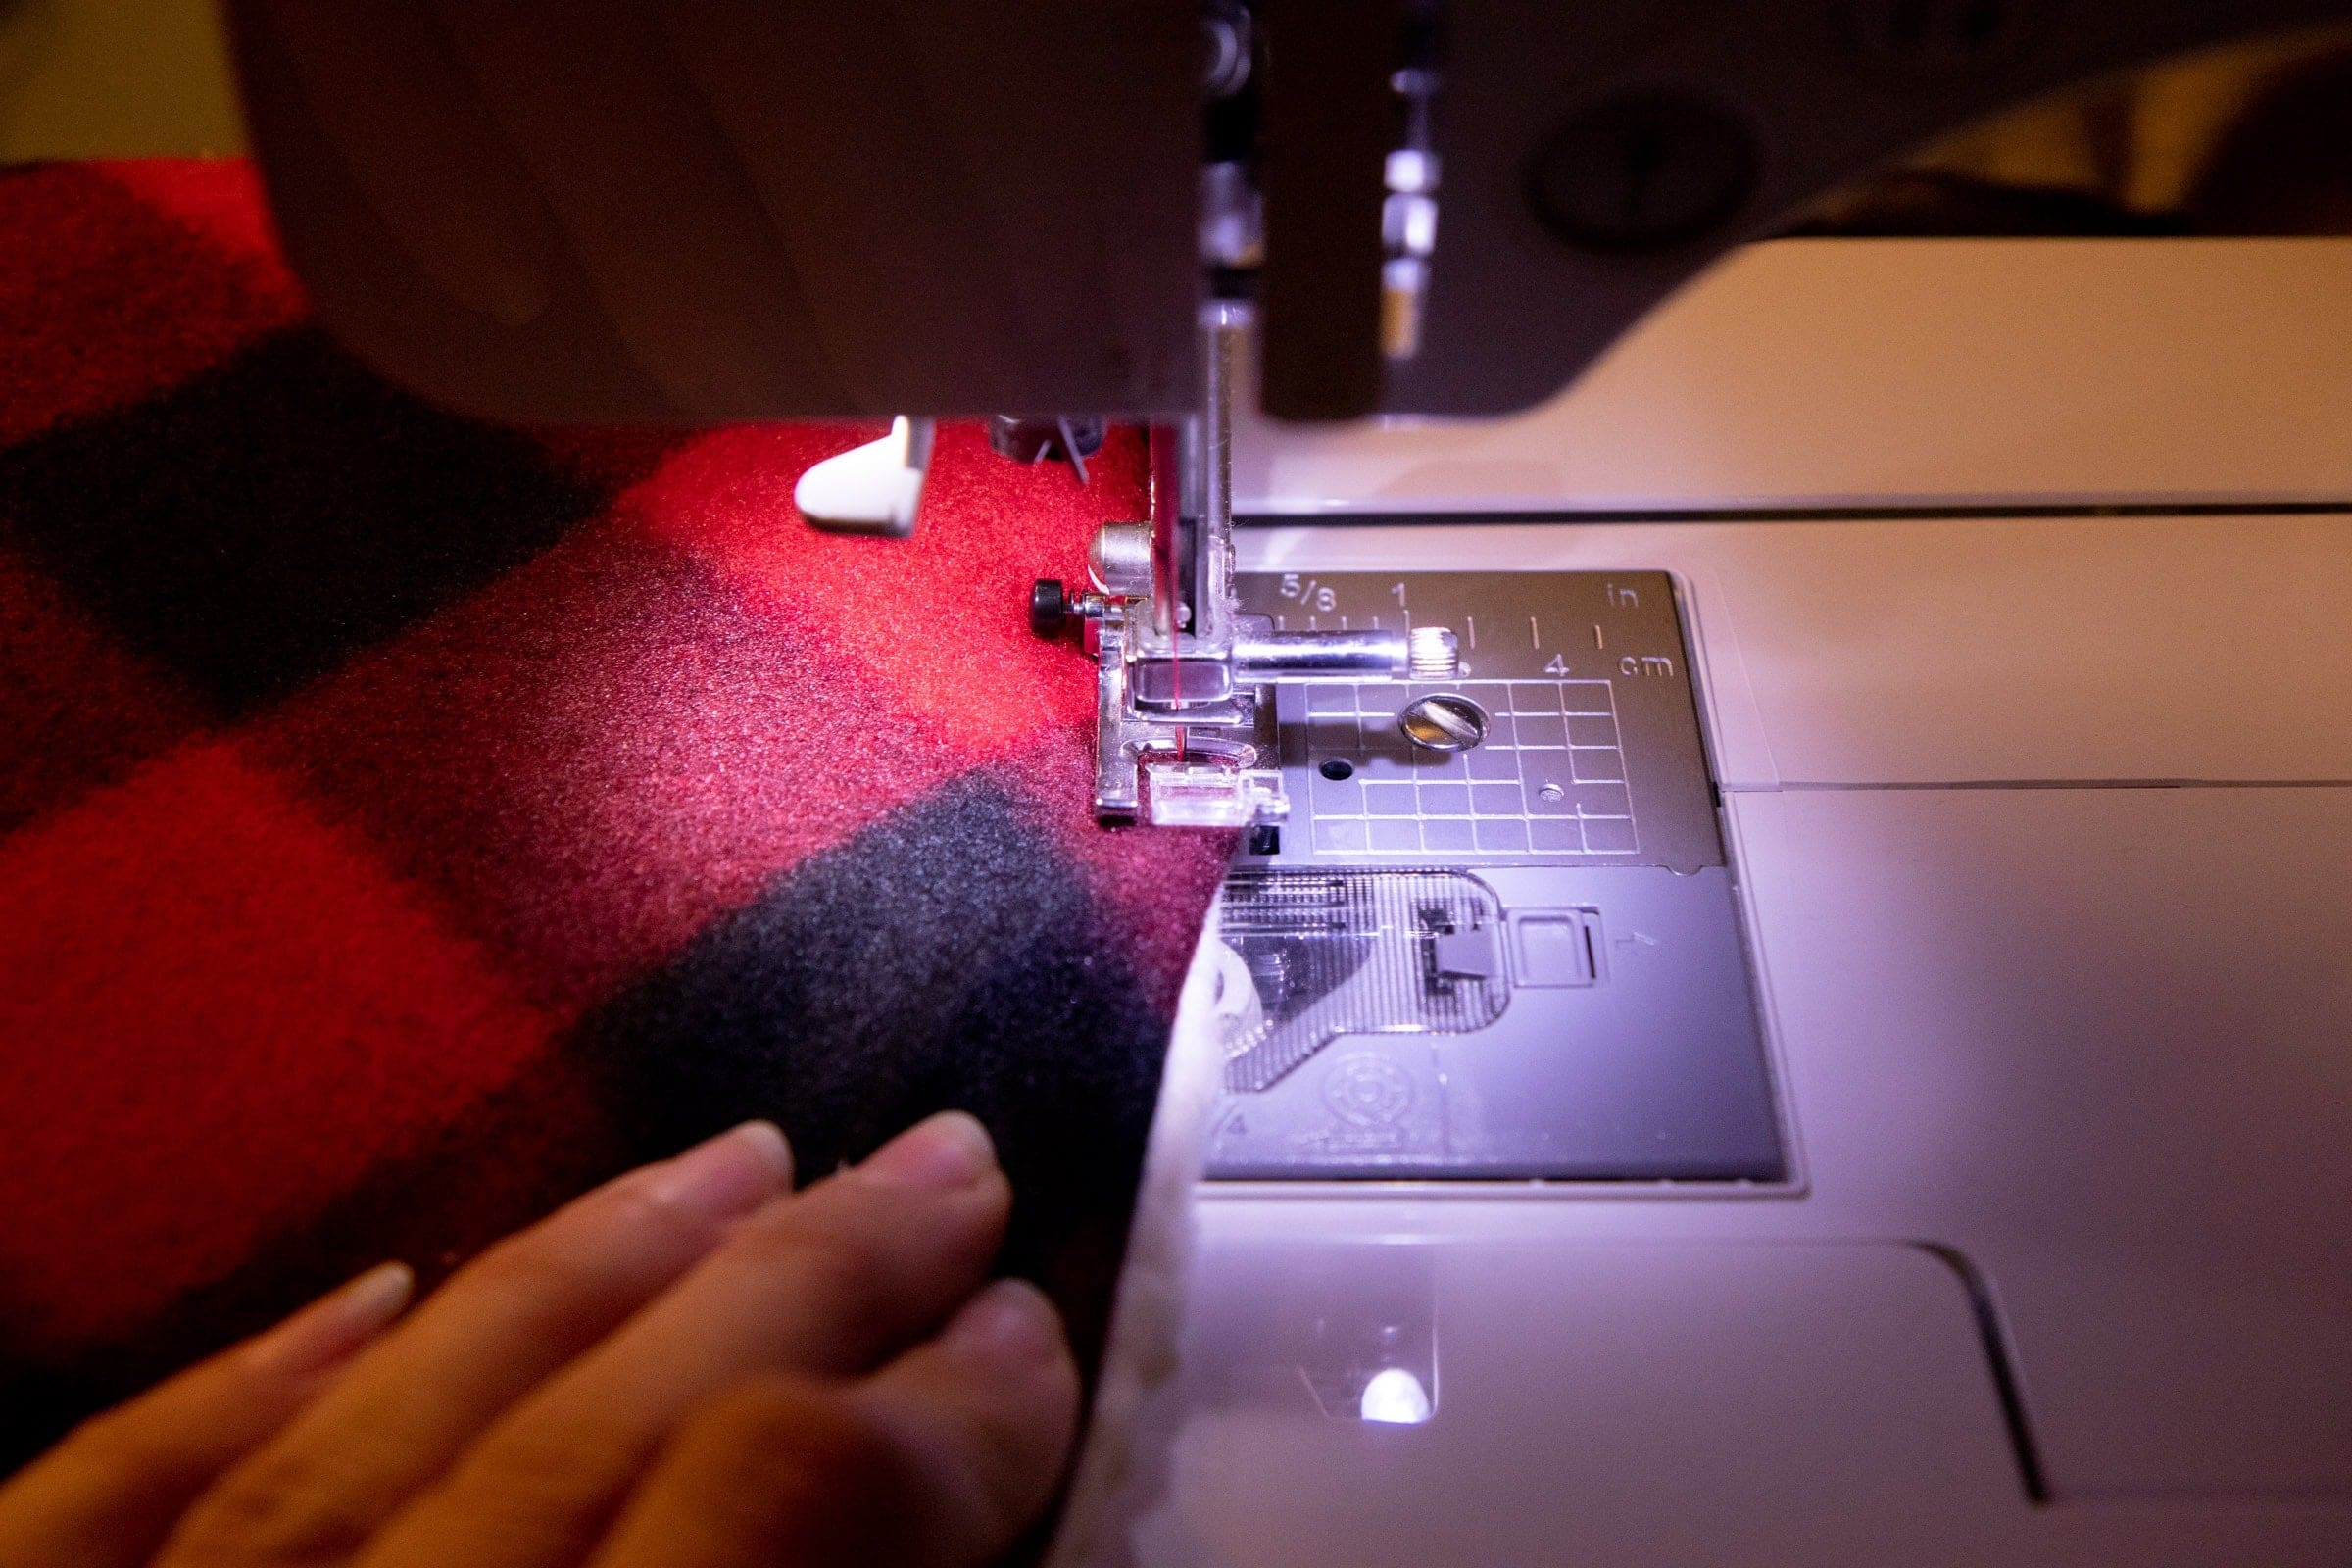 Plaid fabric being fed through a sewing machine